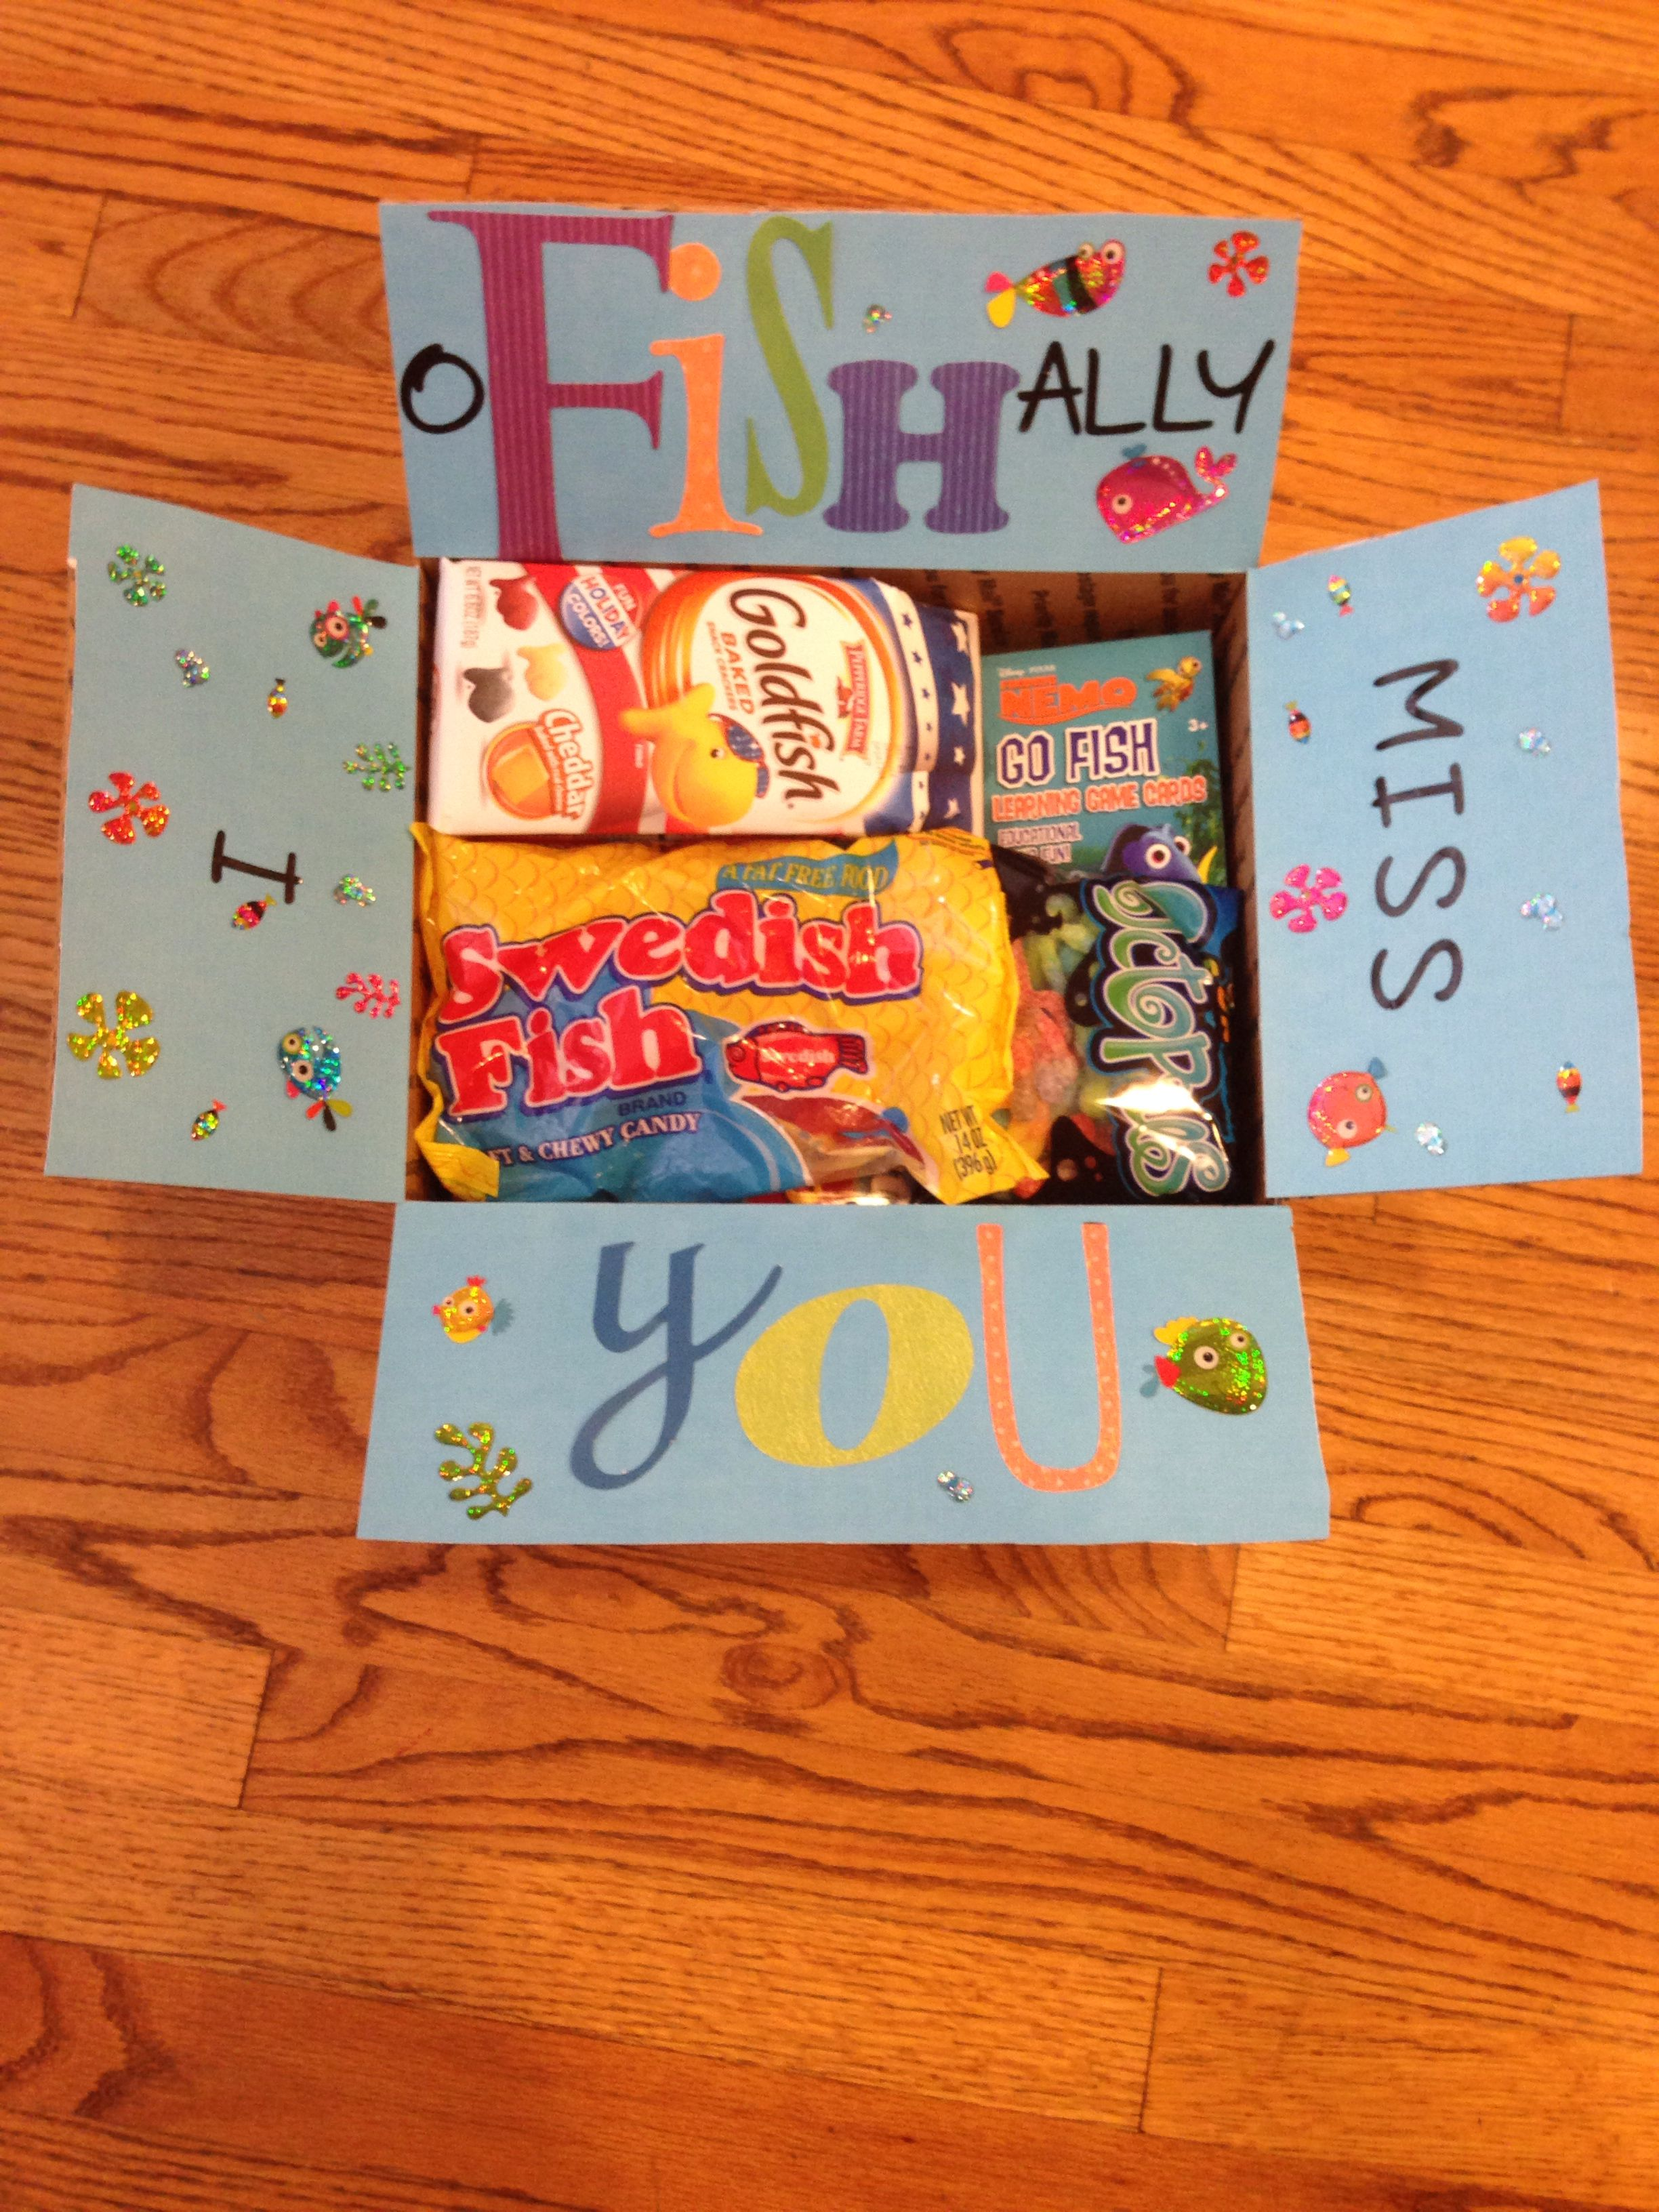 i ofishally miss you care package. … | care packages | pinte…